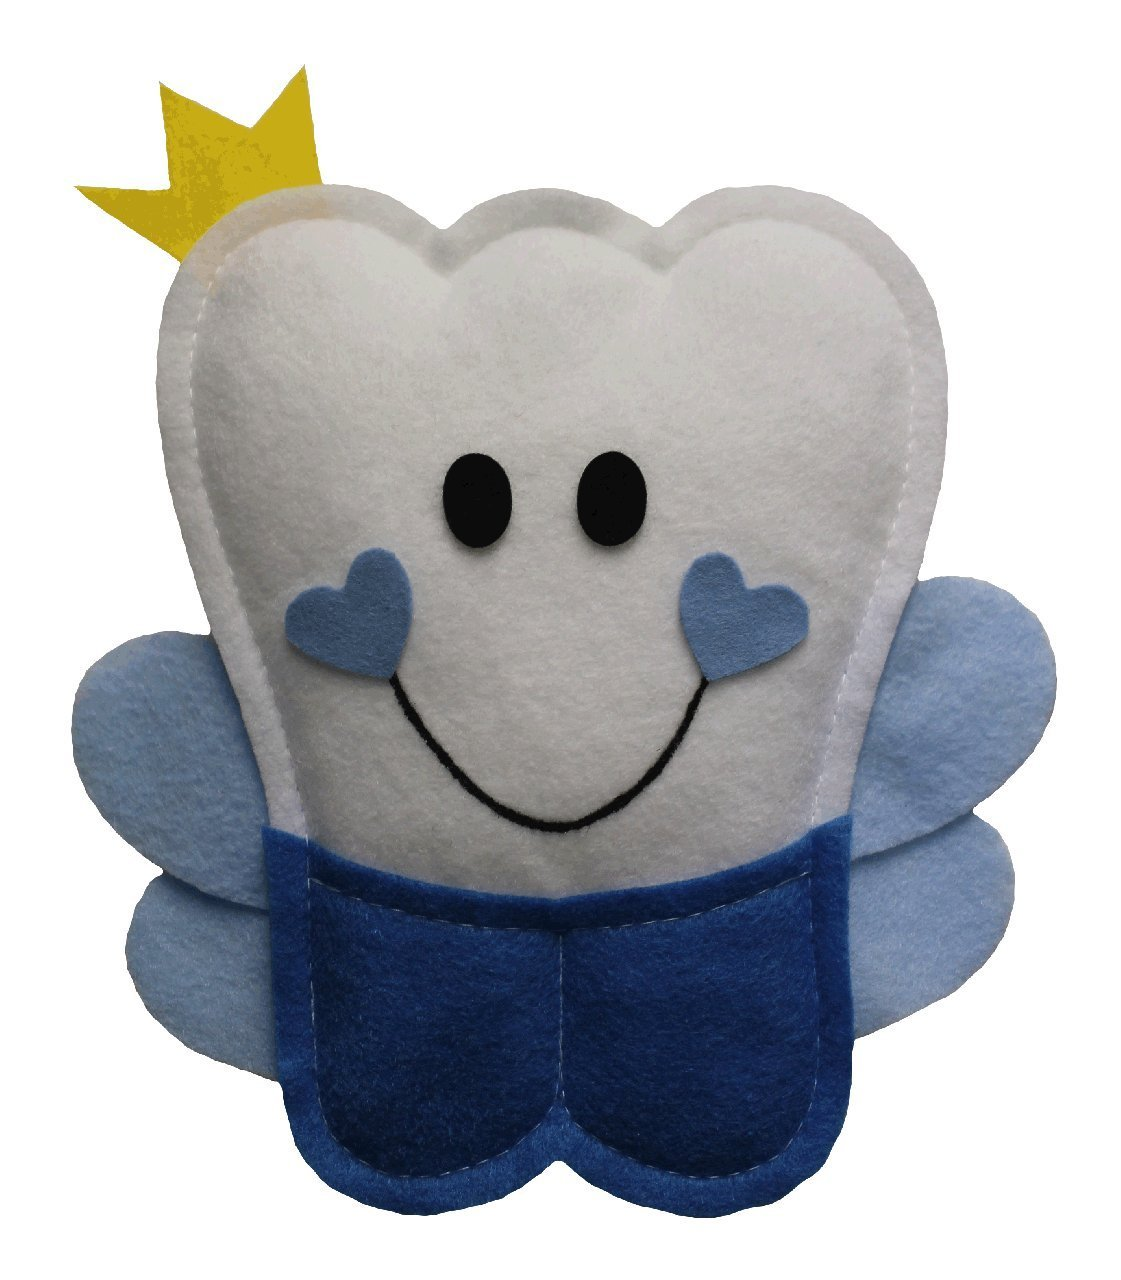 Popular Product Reviews by Amy: Tooth Fairy Pillow by